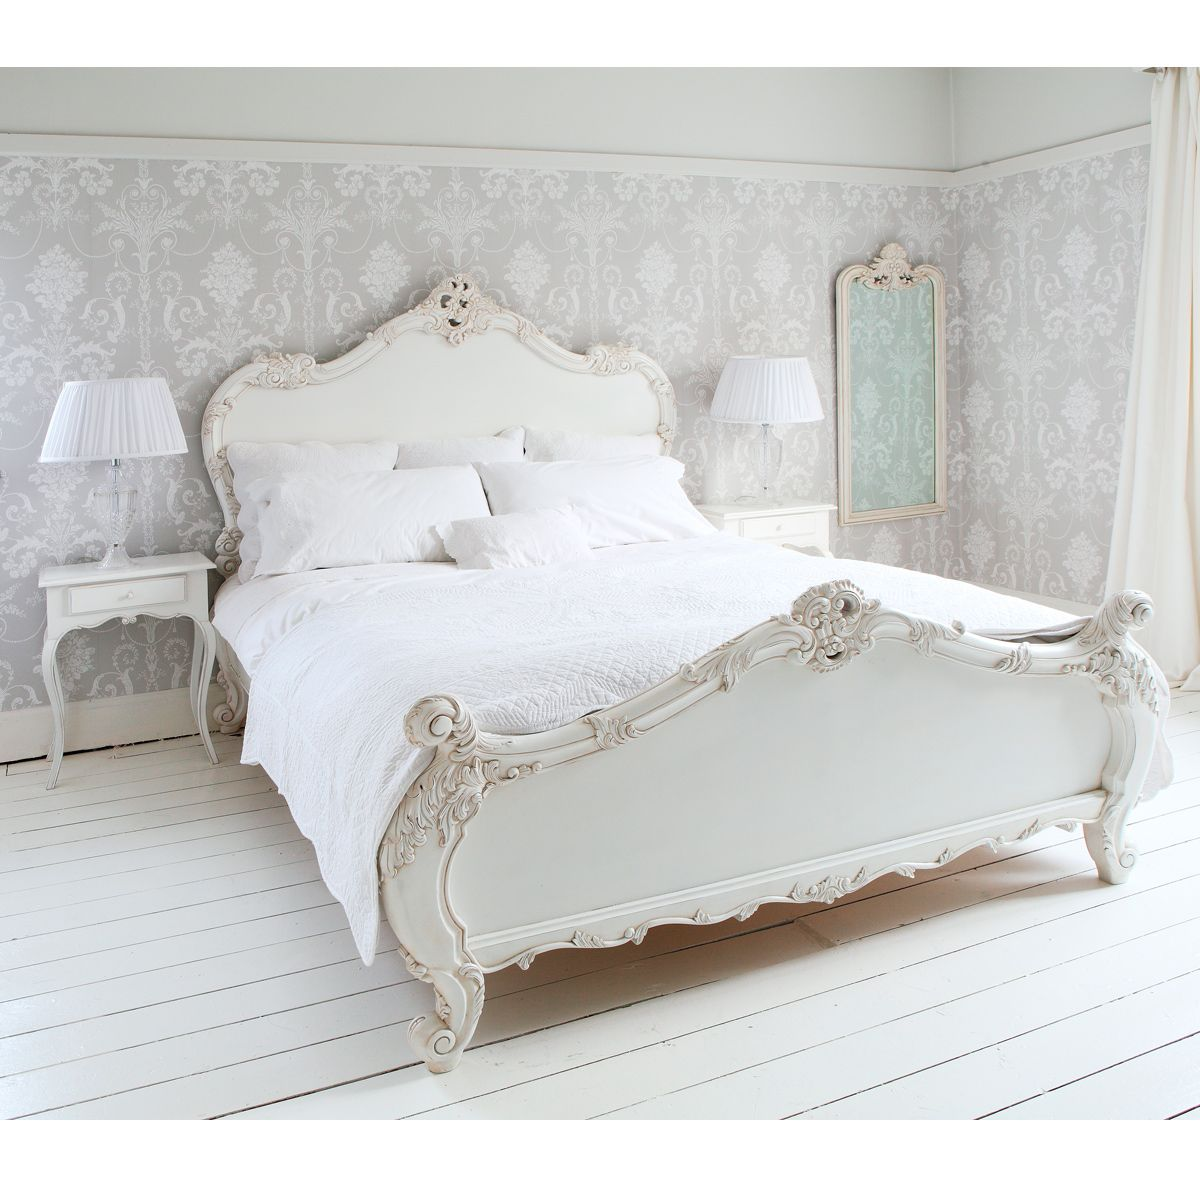 French bed on pinterest classic furniture luxury for French antique bedroom ideas